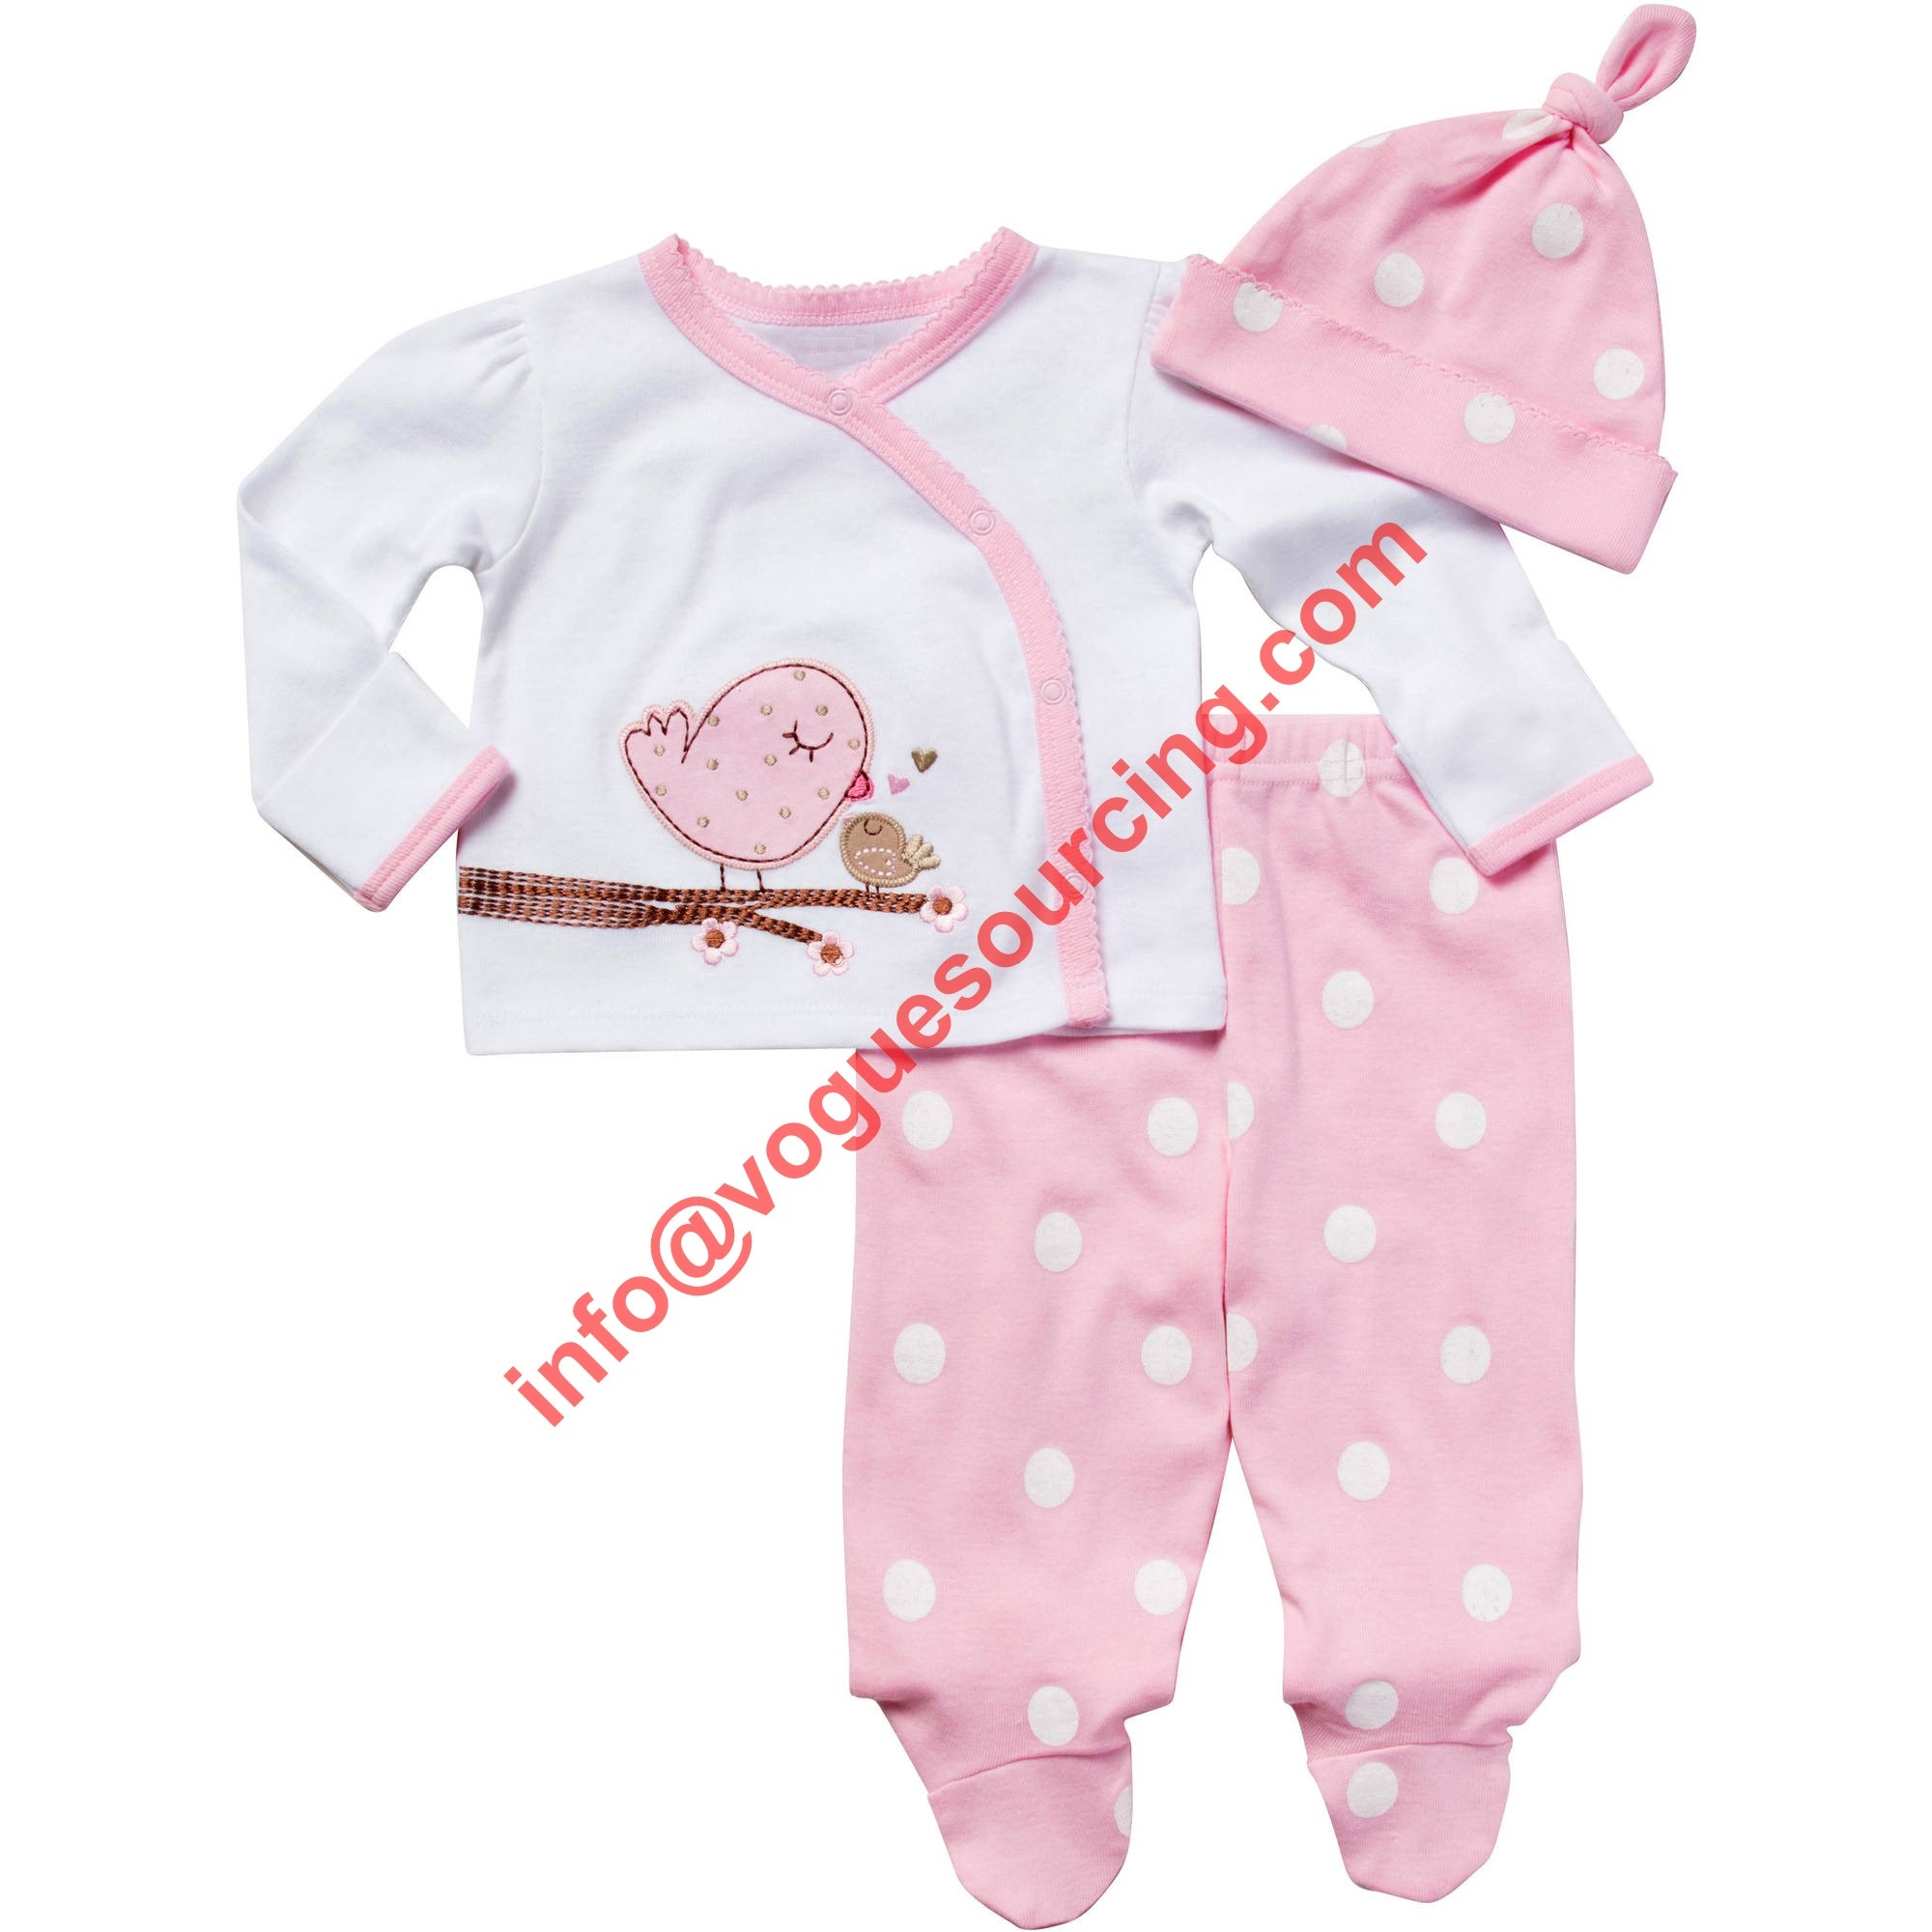 Vogue Sourcing Baby Girl Clothes Manufacturer Exporters in Tirupur